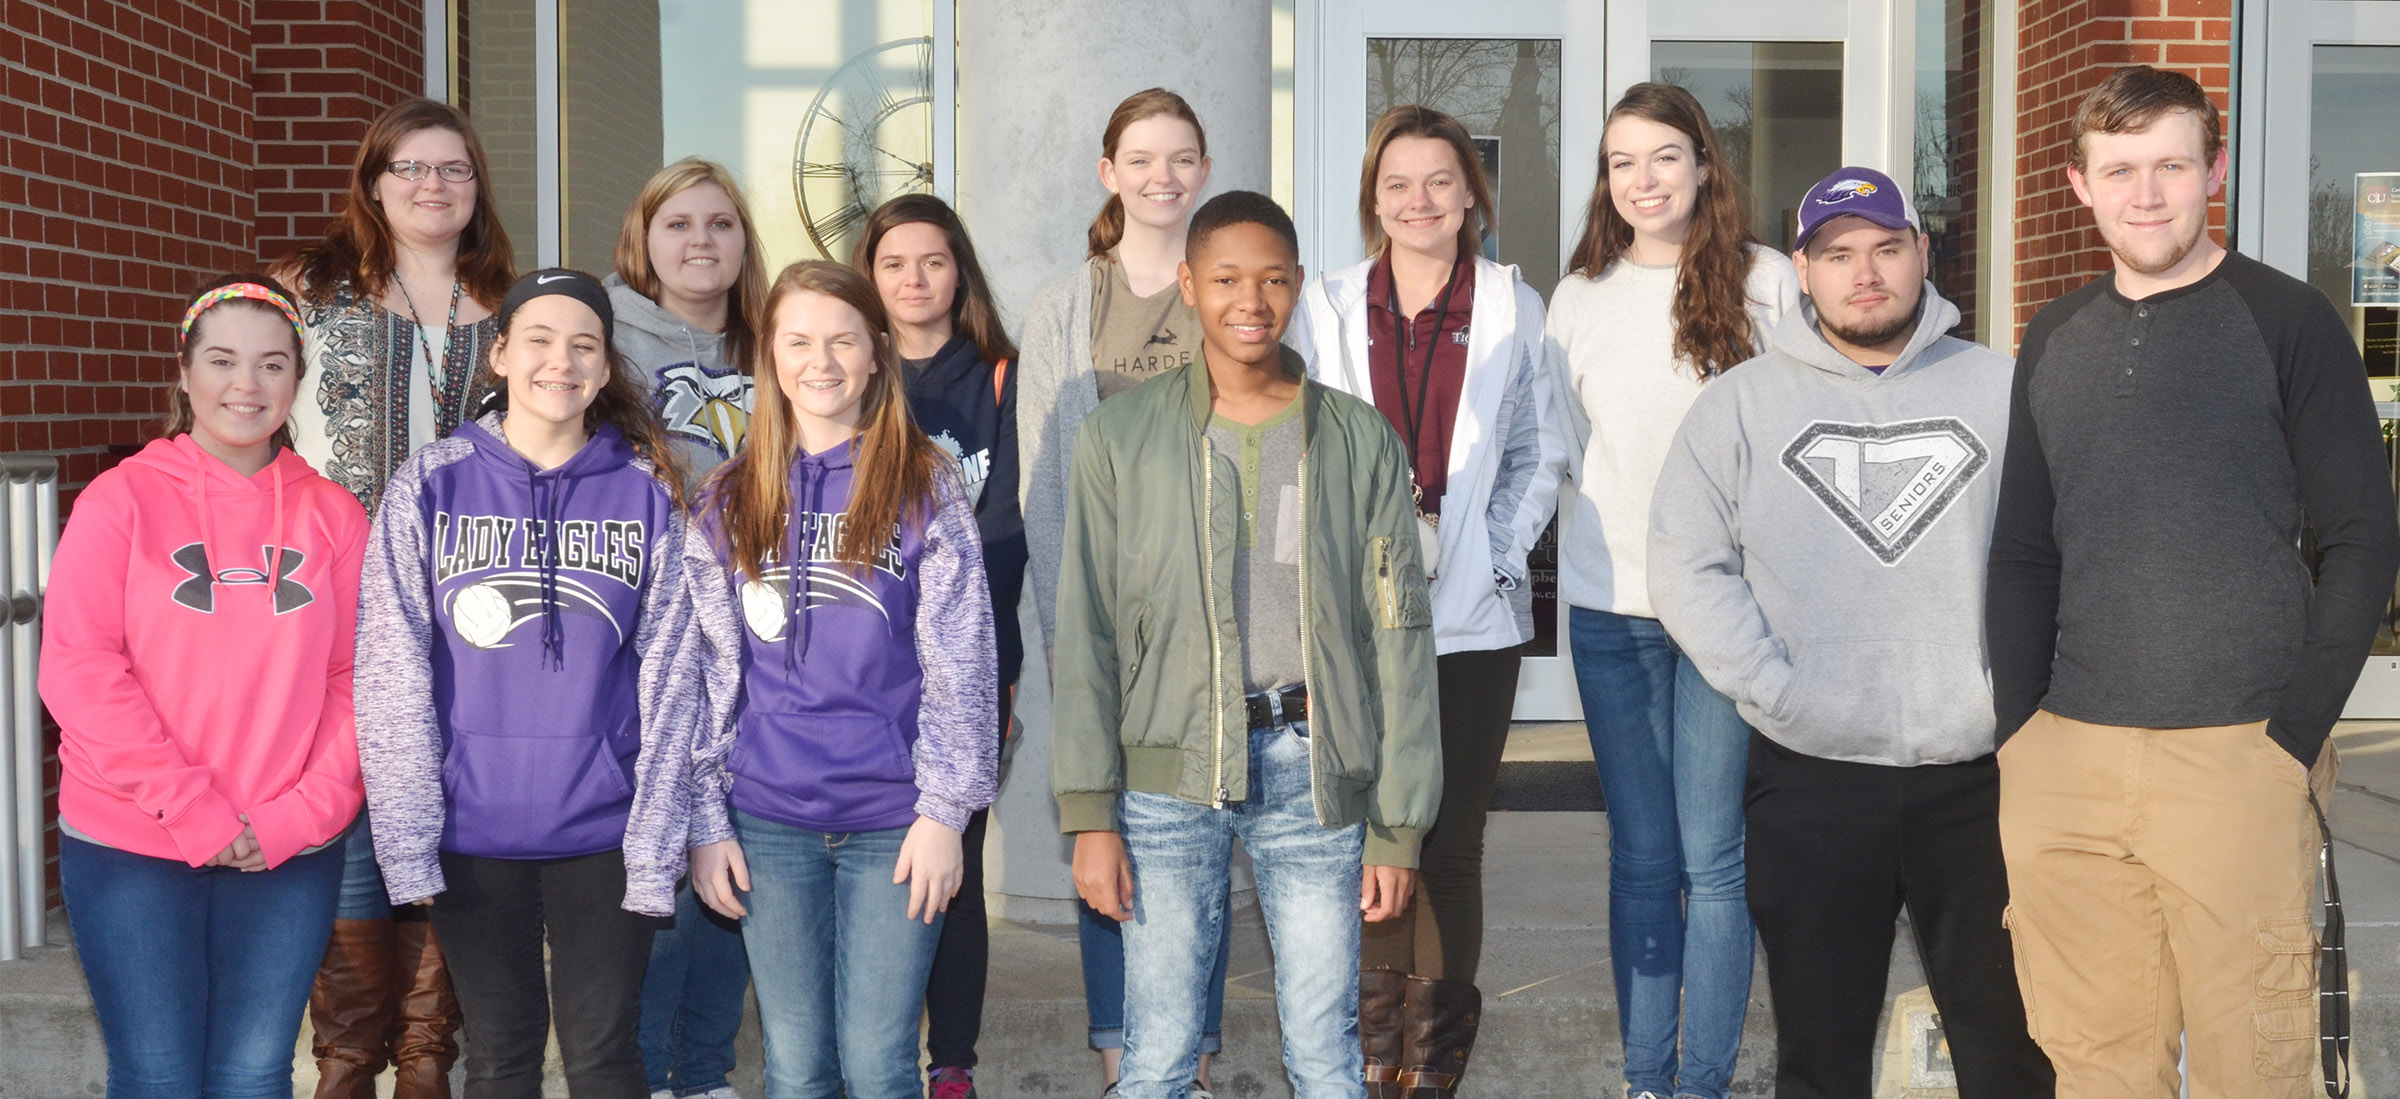 Campbellsville middle and high school students attending the Campbellsville University Mass Communication Workshop are, from left, front eighth-graders Chloe Garrett, Kaylee Reynolds and Taylor Knight and seniors Jaleel Cowan, Logan Brown and Jared Brewster. Back, senior Vera Brown, sophomore Andrea Bryant and seniors Shauna Jones, Blair Lamb, Kyrsten Hill and Laura Lamb. CHS junior Austin Fitzgerald is absent from the photo.